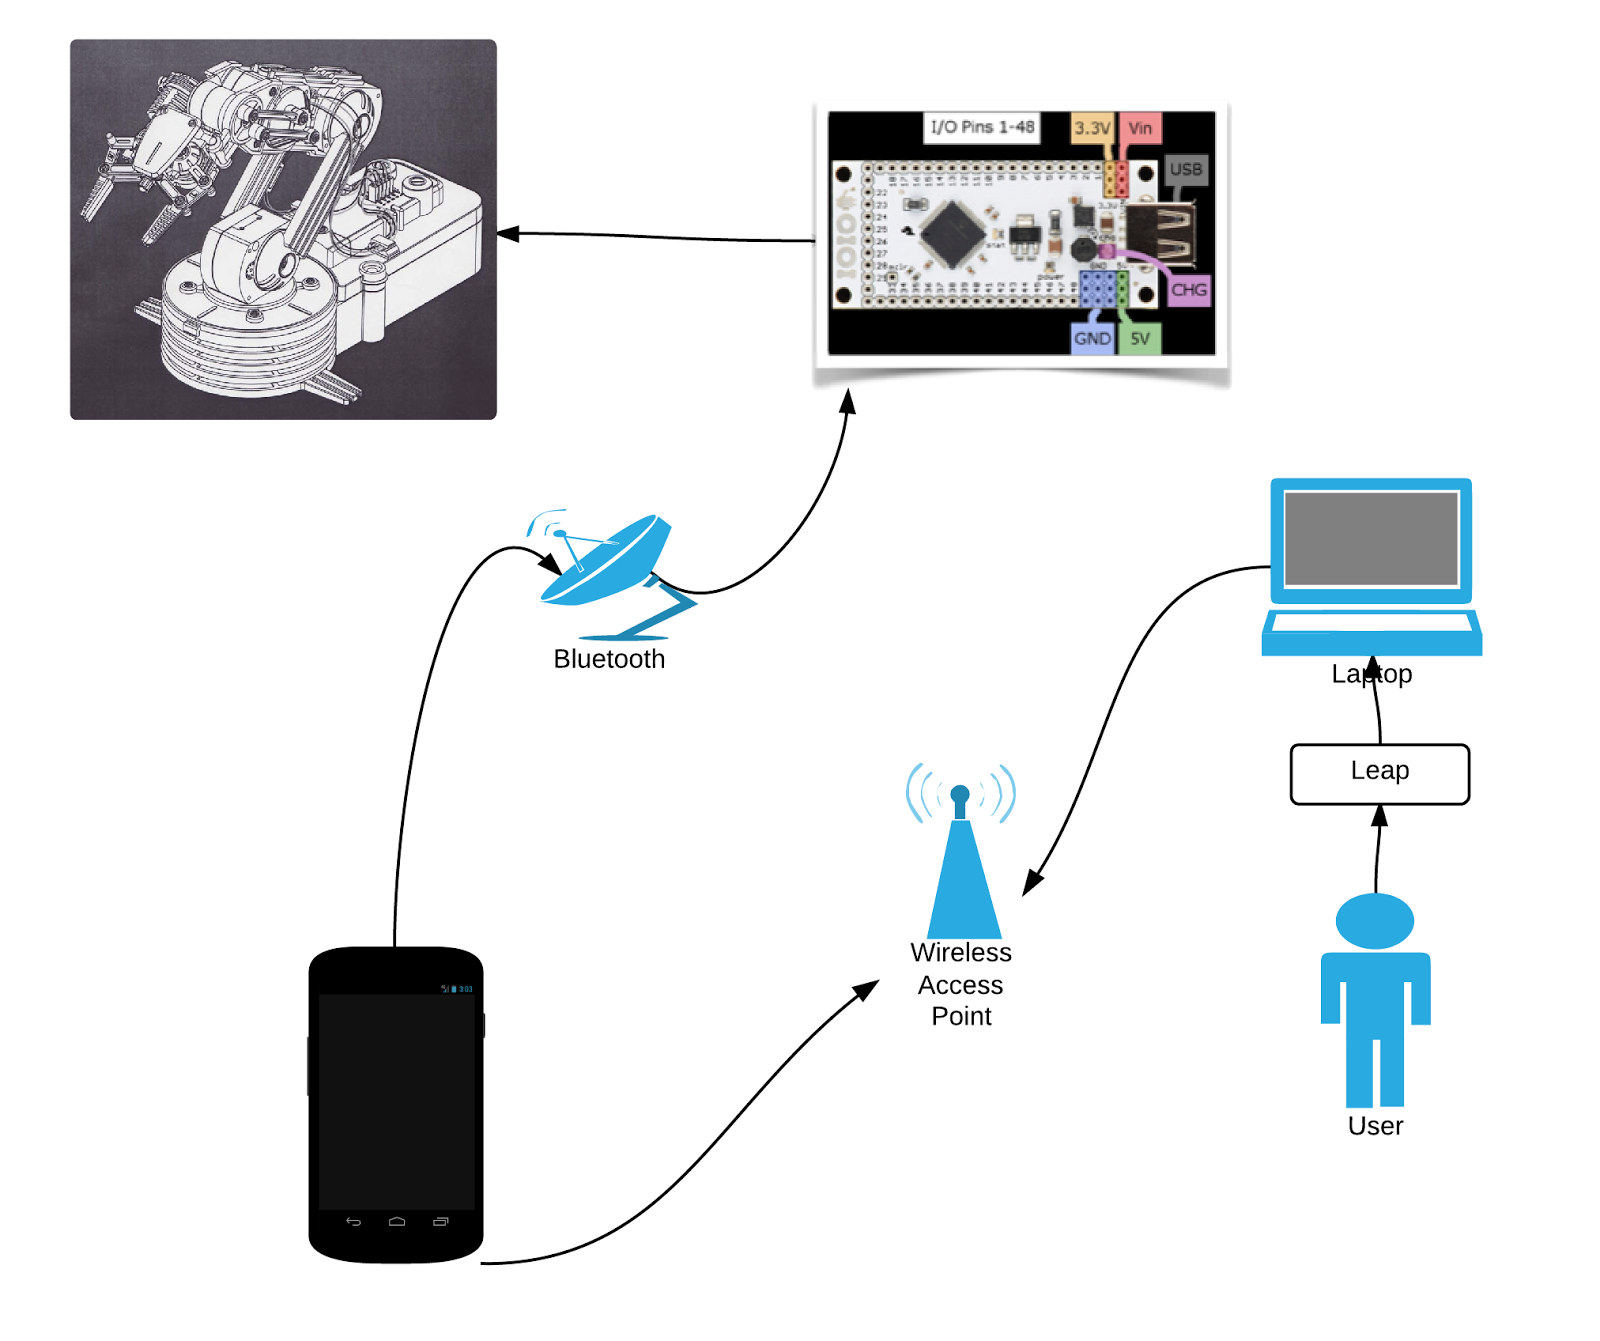 Tcinc Blog Hacking Robotic Arm With Leap Motion 130 Looper 96 Wiring Diagram And A Mobile Application Device Https Leapmotioncom Heres Block That Shows How The System Got Put Together